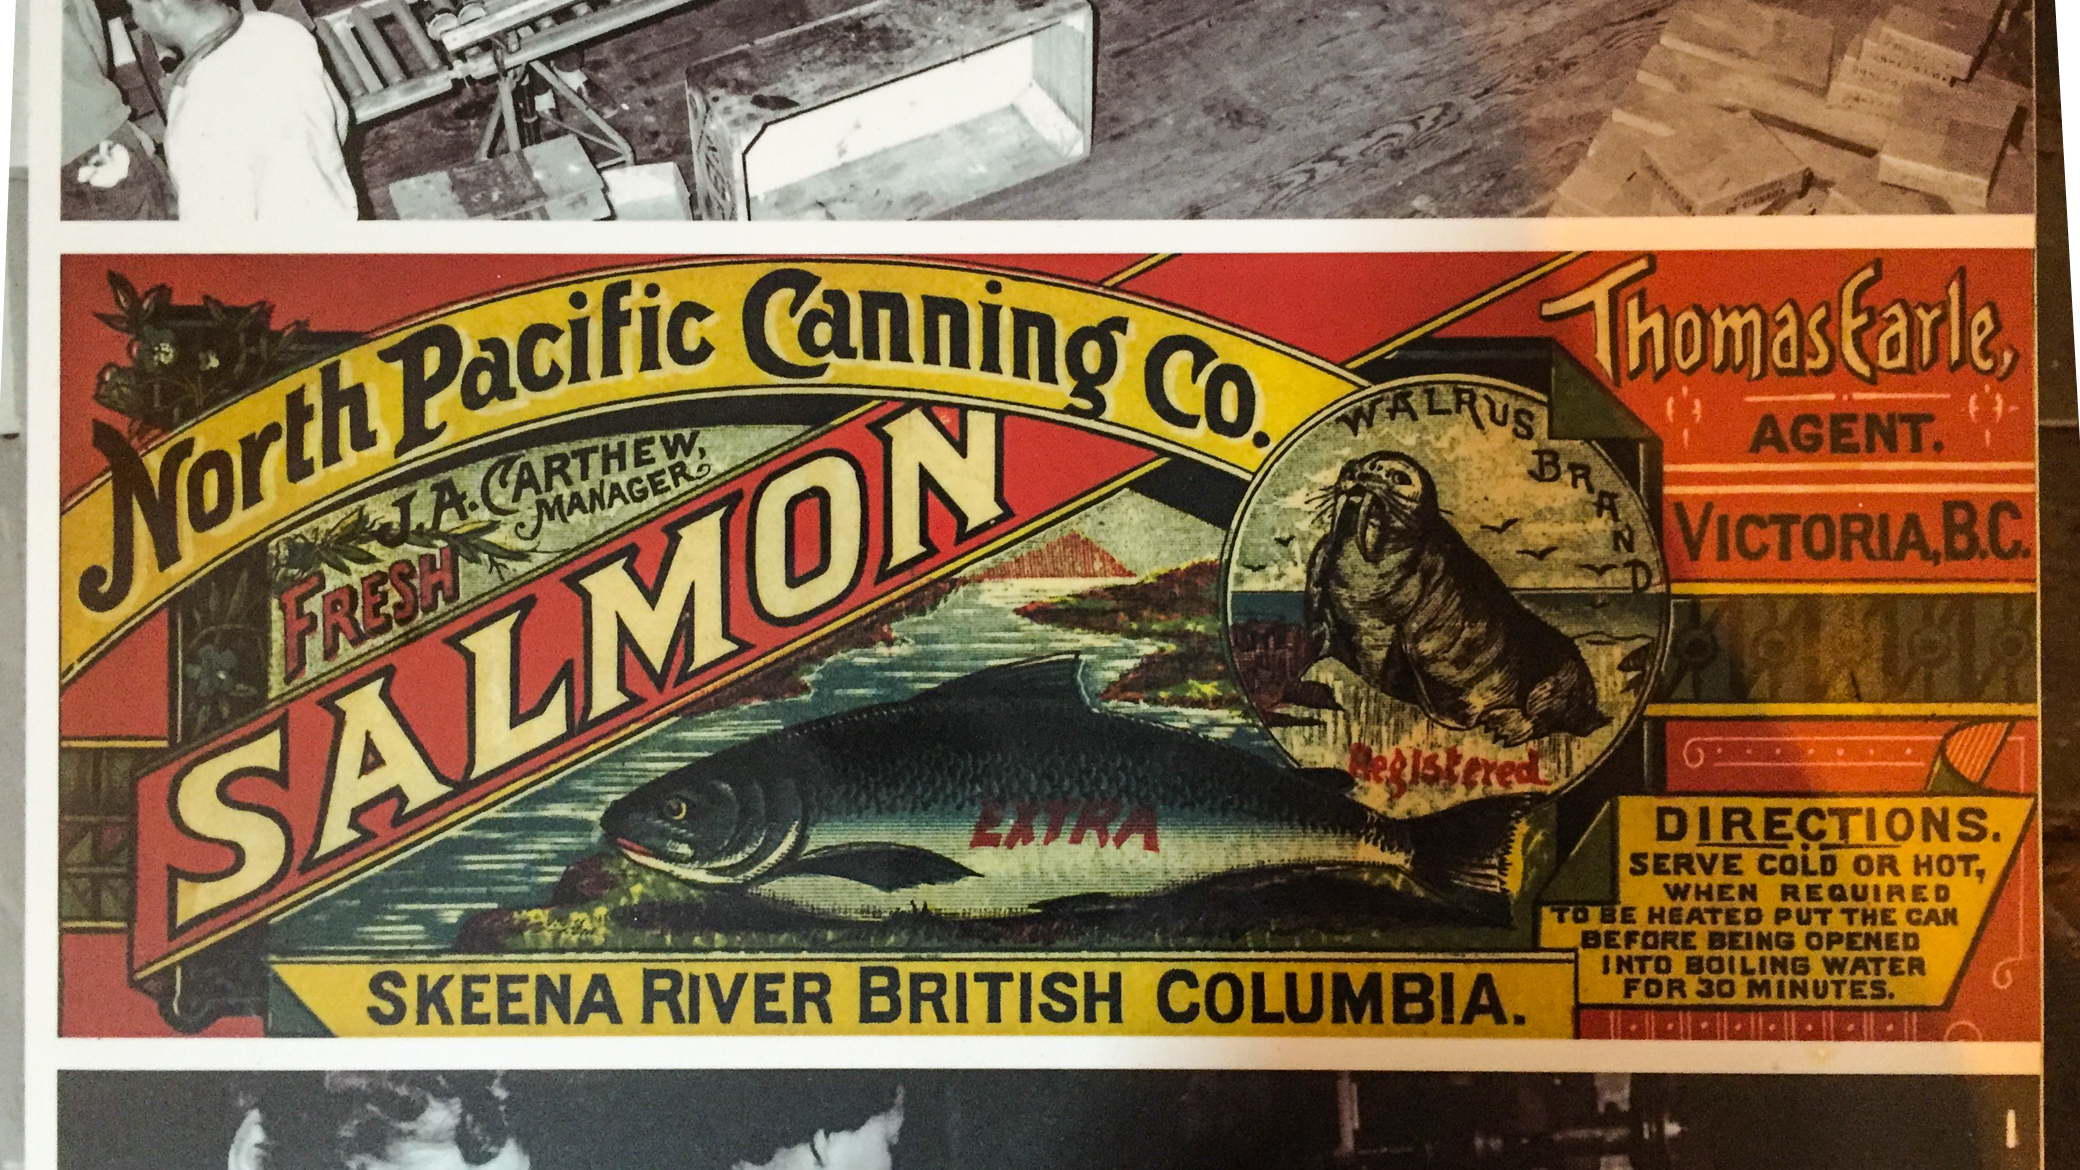 The Skeena salmon industry was once a booming business, and shipped fish around the world. Photo by David Wolman